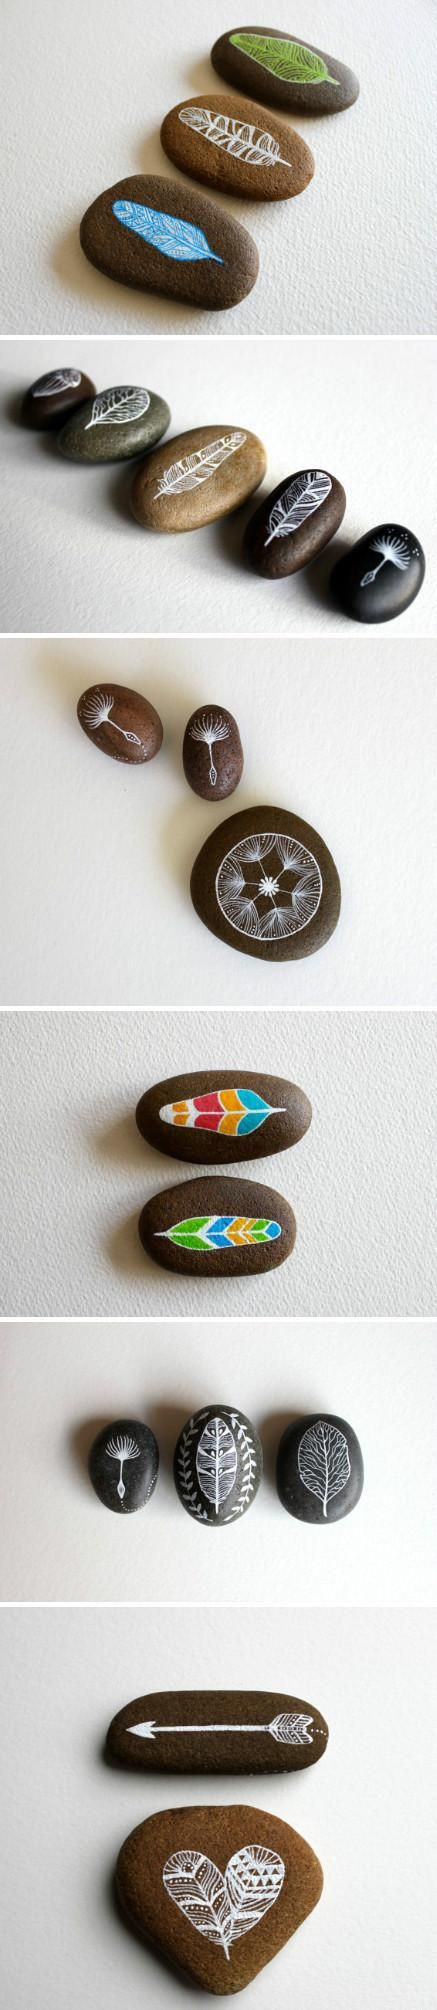 More beautifully painted pebbles, time to go beach combing...